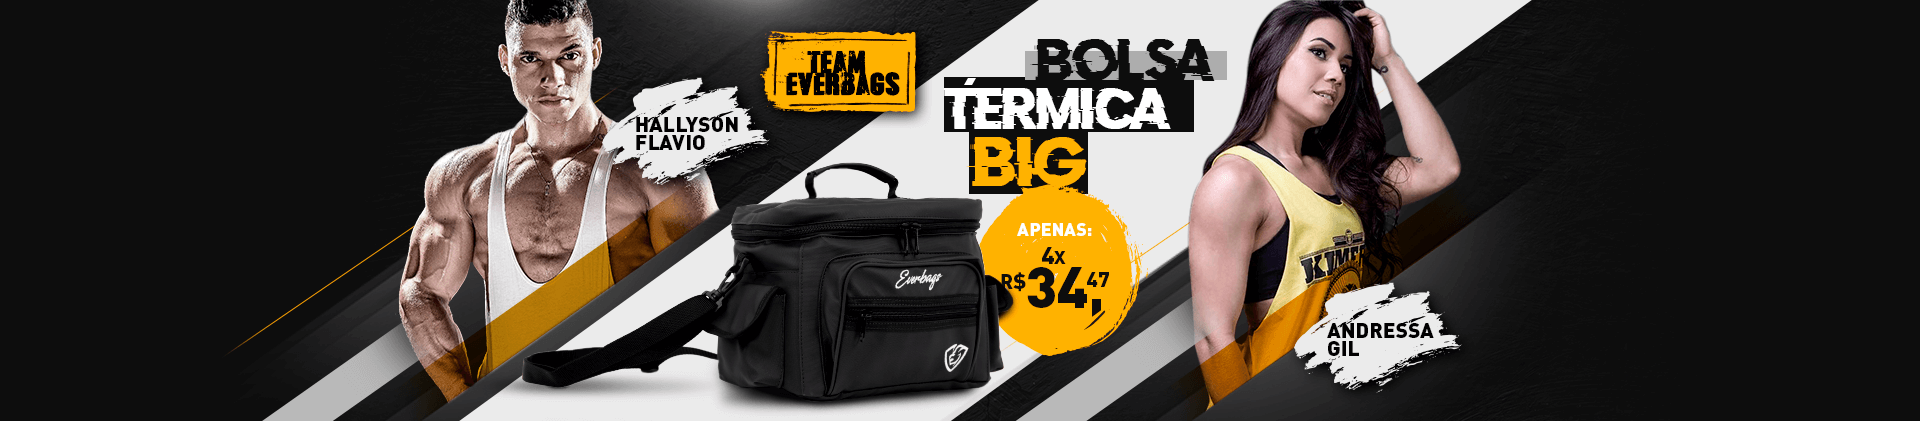 Bolsa Térmica Big Everbags